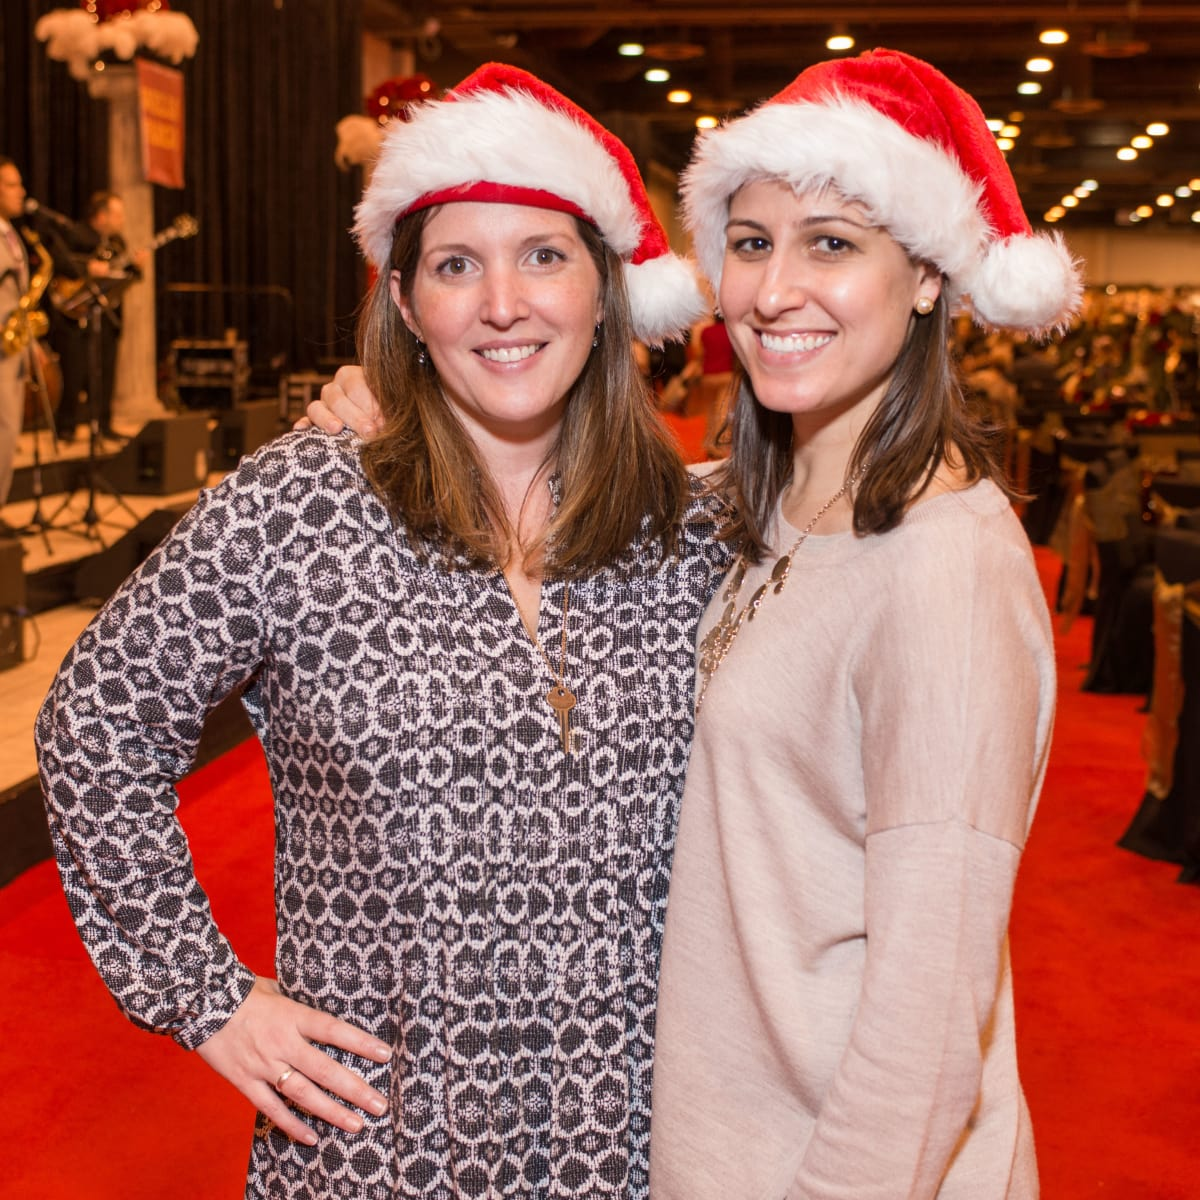 News, Shelby, Nutcracker Market, Nov. 2015, Cole Mark, Lauren Jacobs